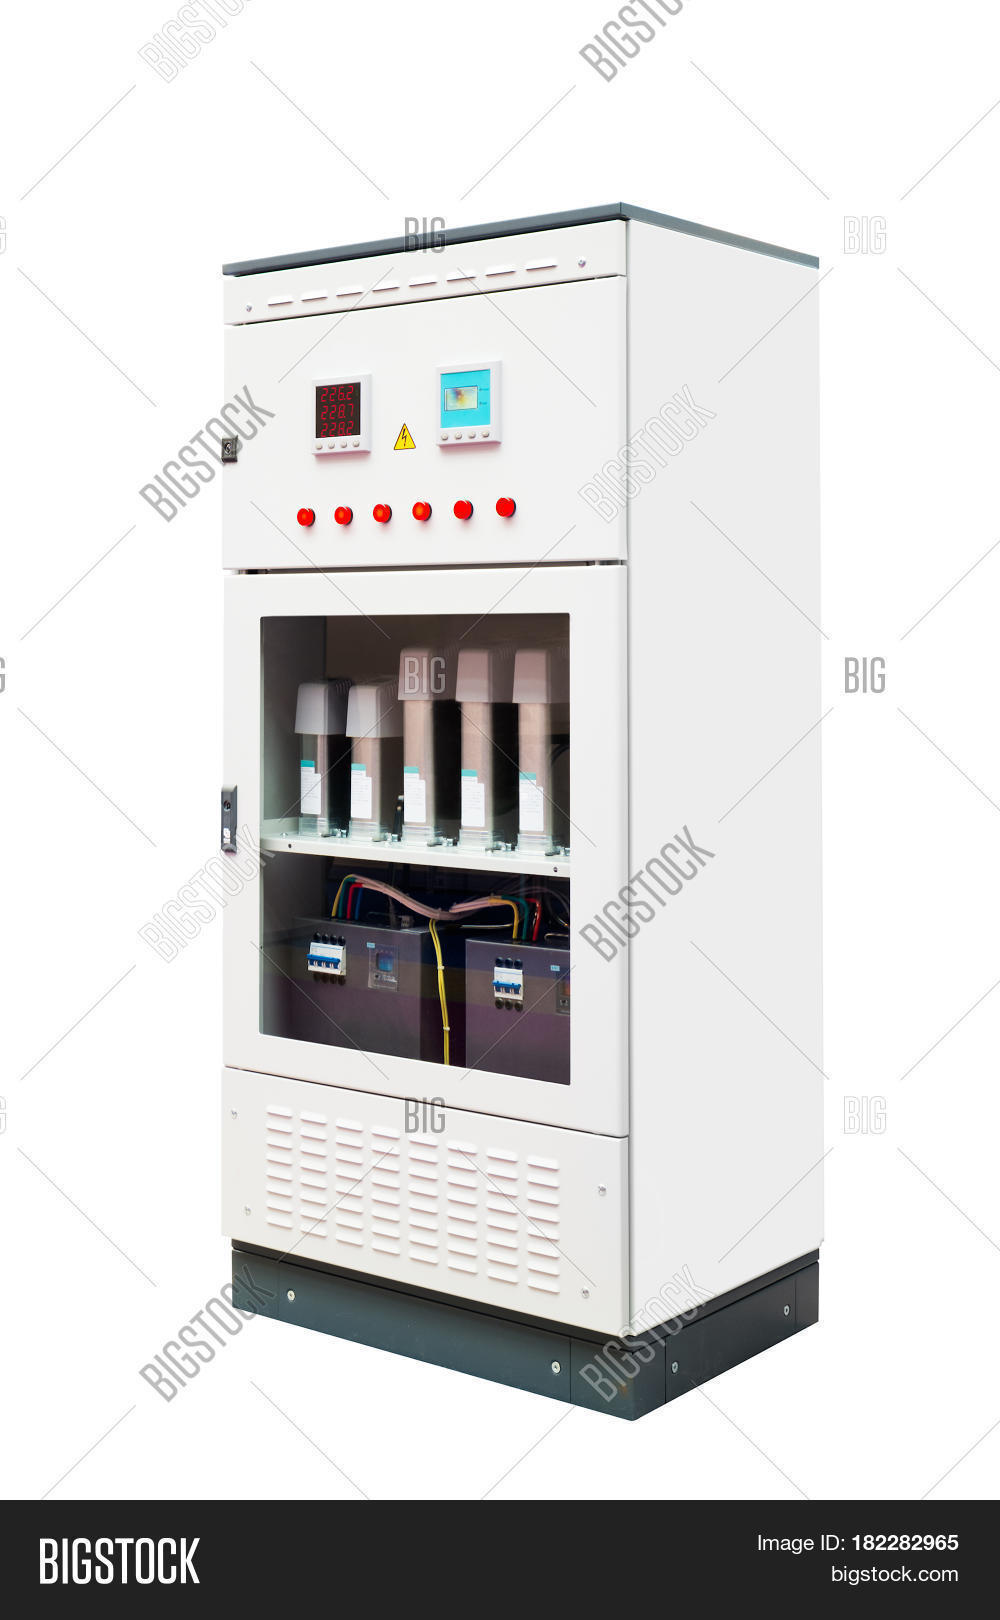 Electrical Enclosure Image Photo Free Trial Bigstock Fuse Box Door With Its Closed Could Be Circuit Breaker Control Panel